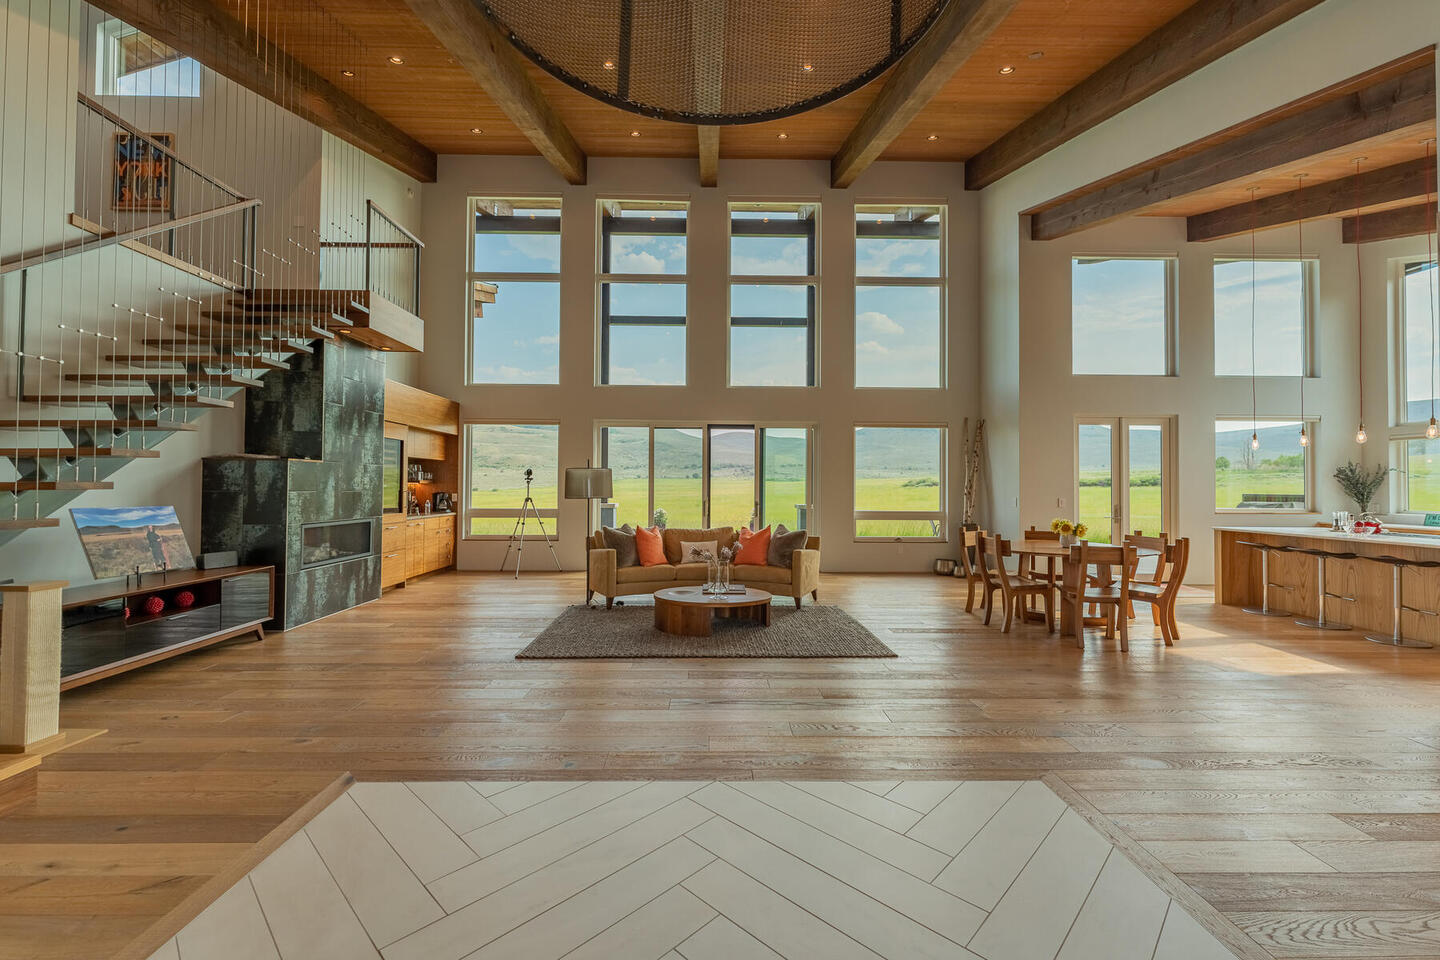 347 Overlook Trail, Gunnison, CO, USA. Courtesy: LIV Sotheby's International Realty